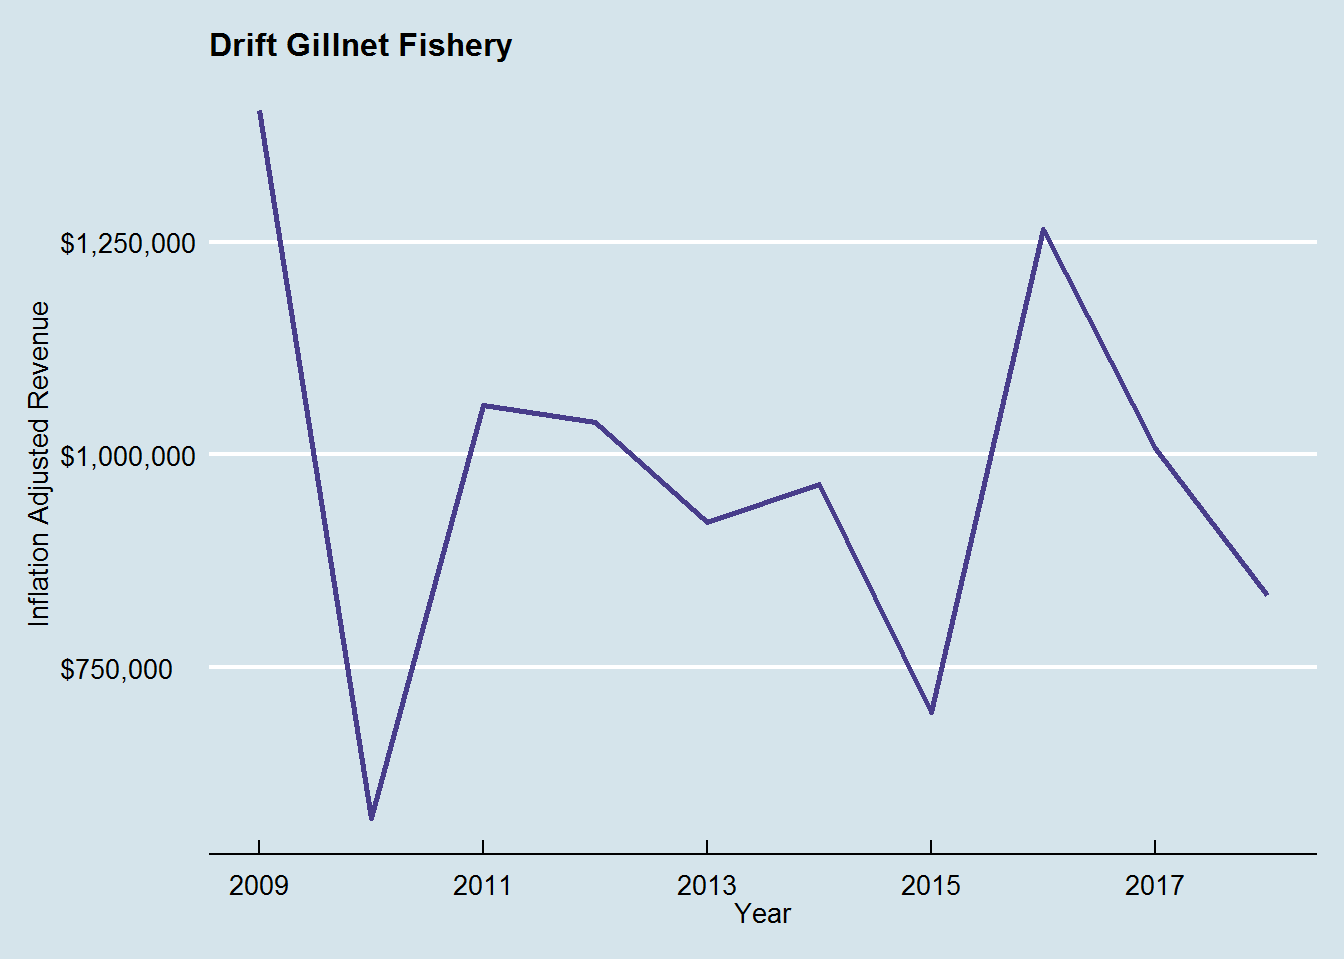 Inflation-adjusted revenue for the drift gillnet fishery for albacore, last 10 years.